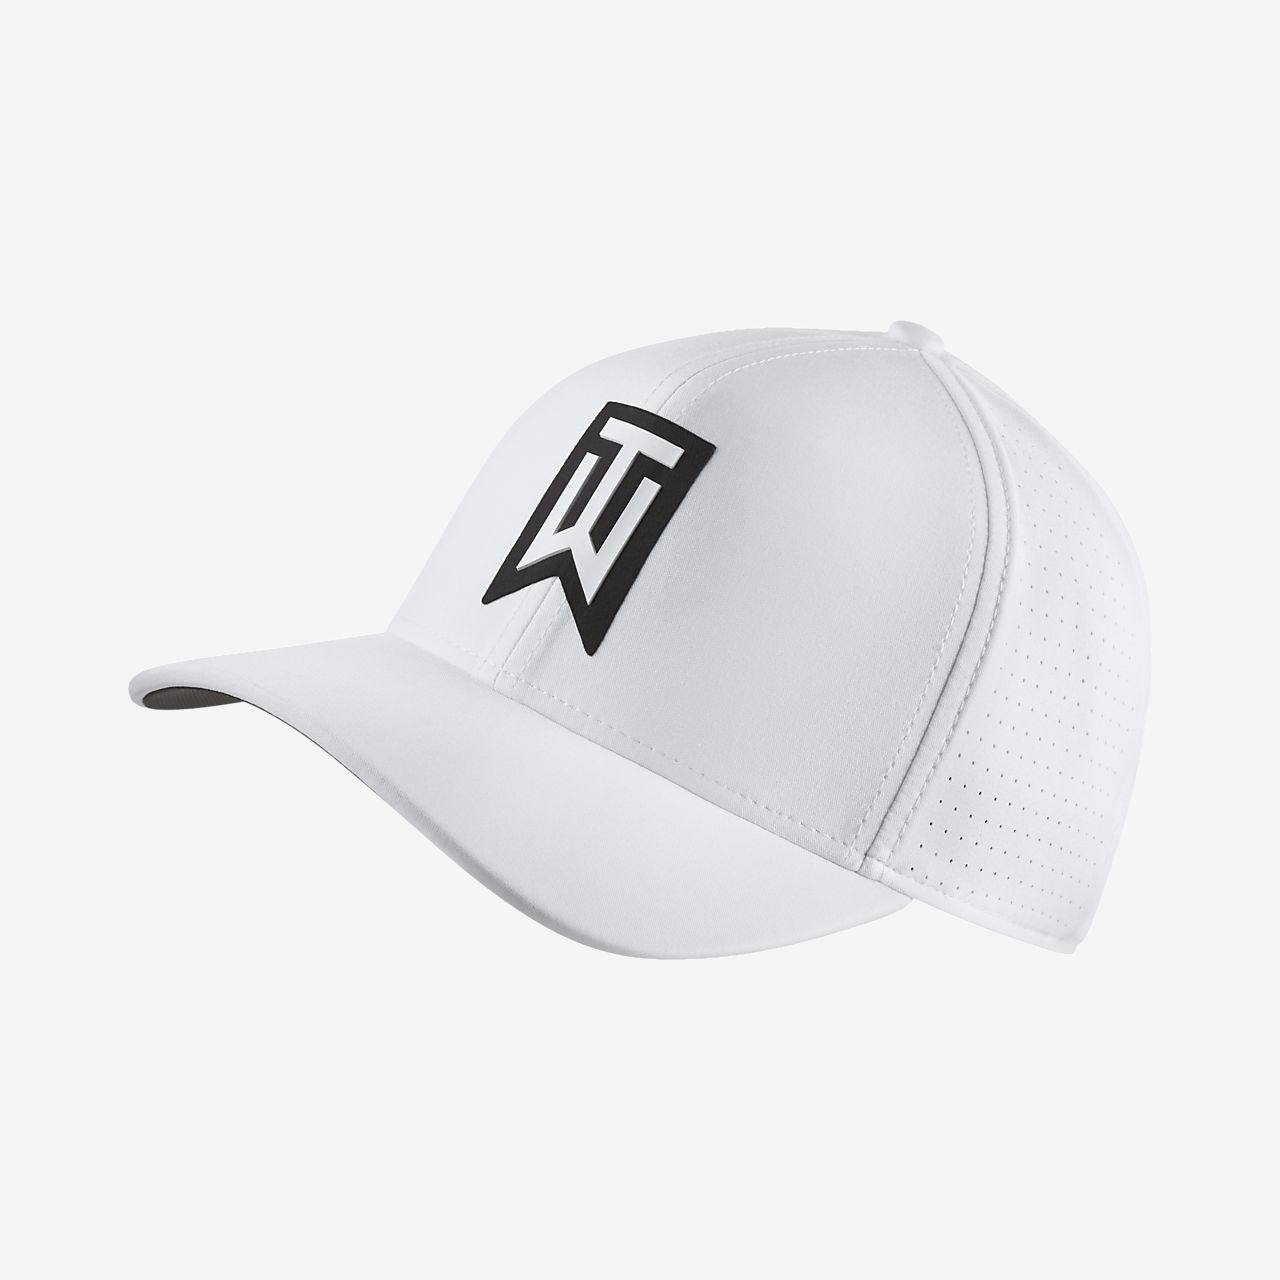 d230584f TW AeroBill Classic 99 Fitted Golf Hat. Nike.com